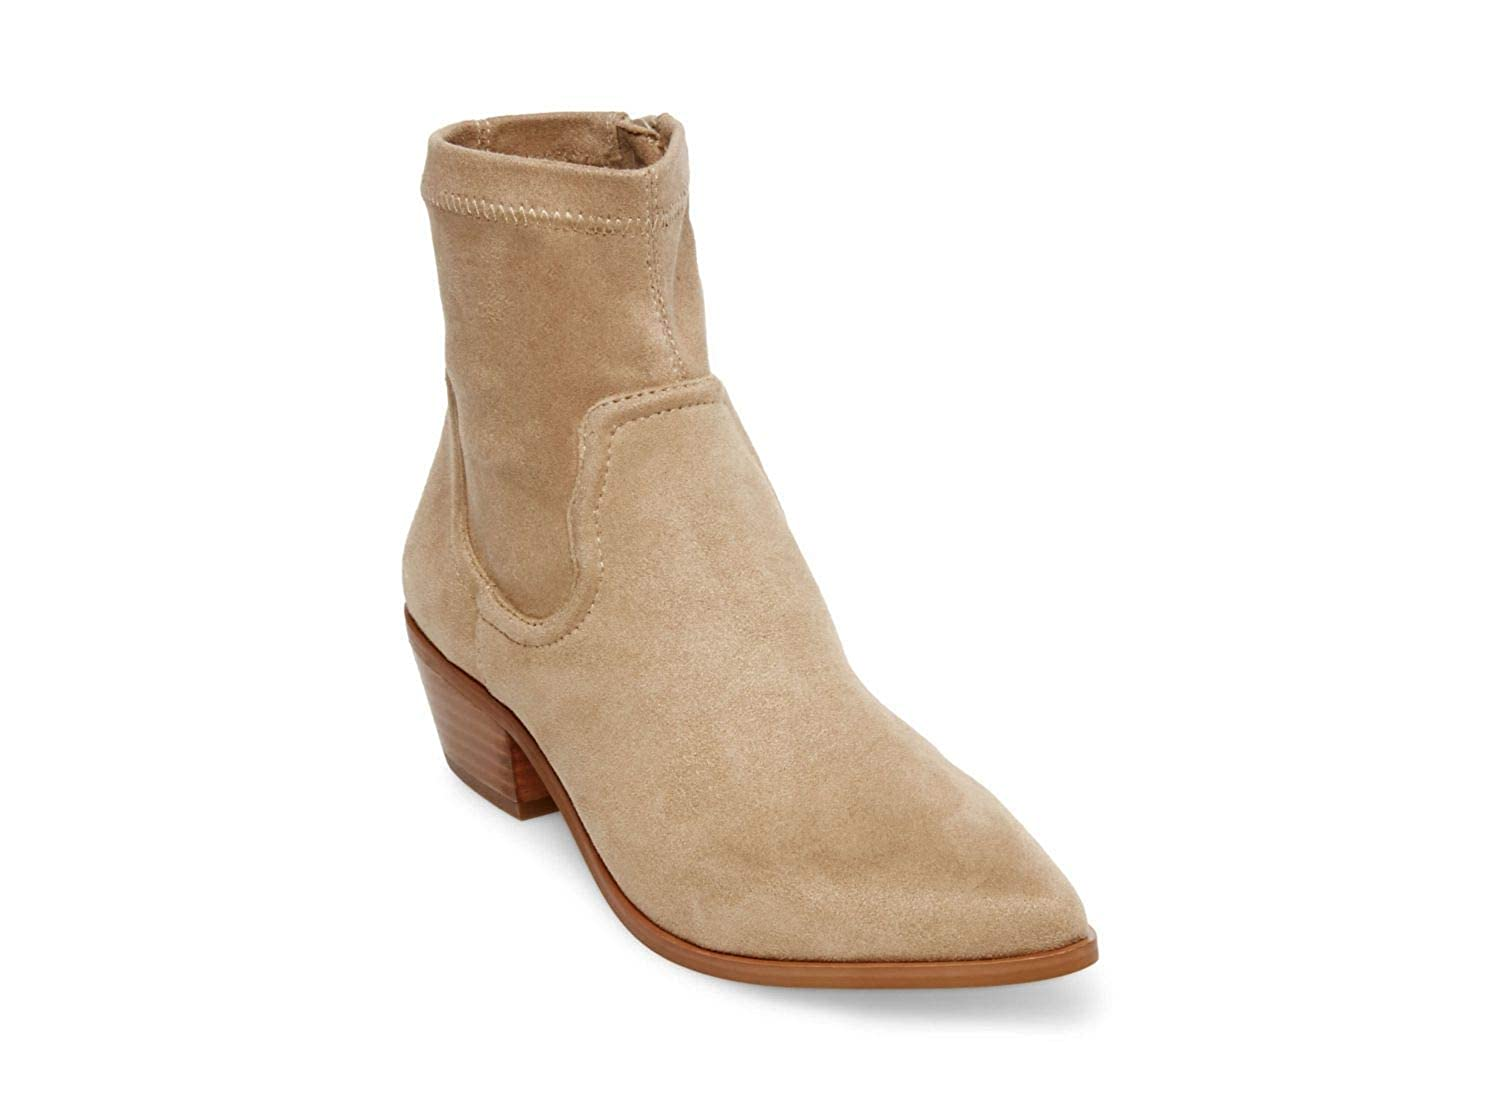 bf0867cae9c Steve Madden Women's Western Ankle Boot